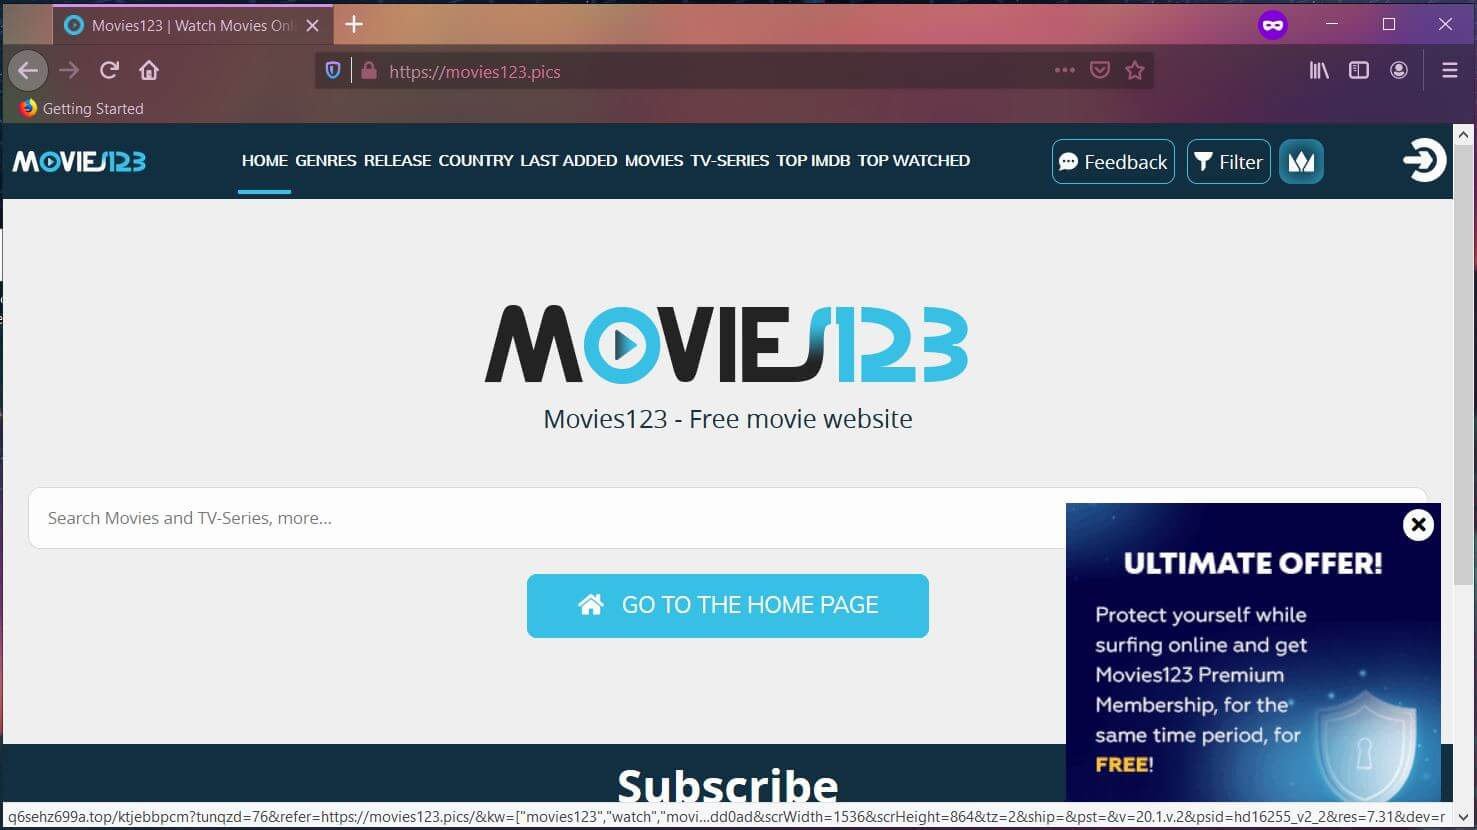 movies123 ads removal guide stf